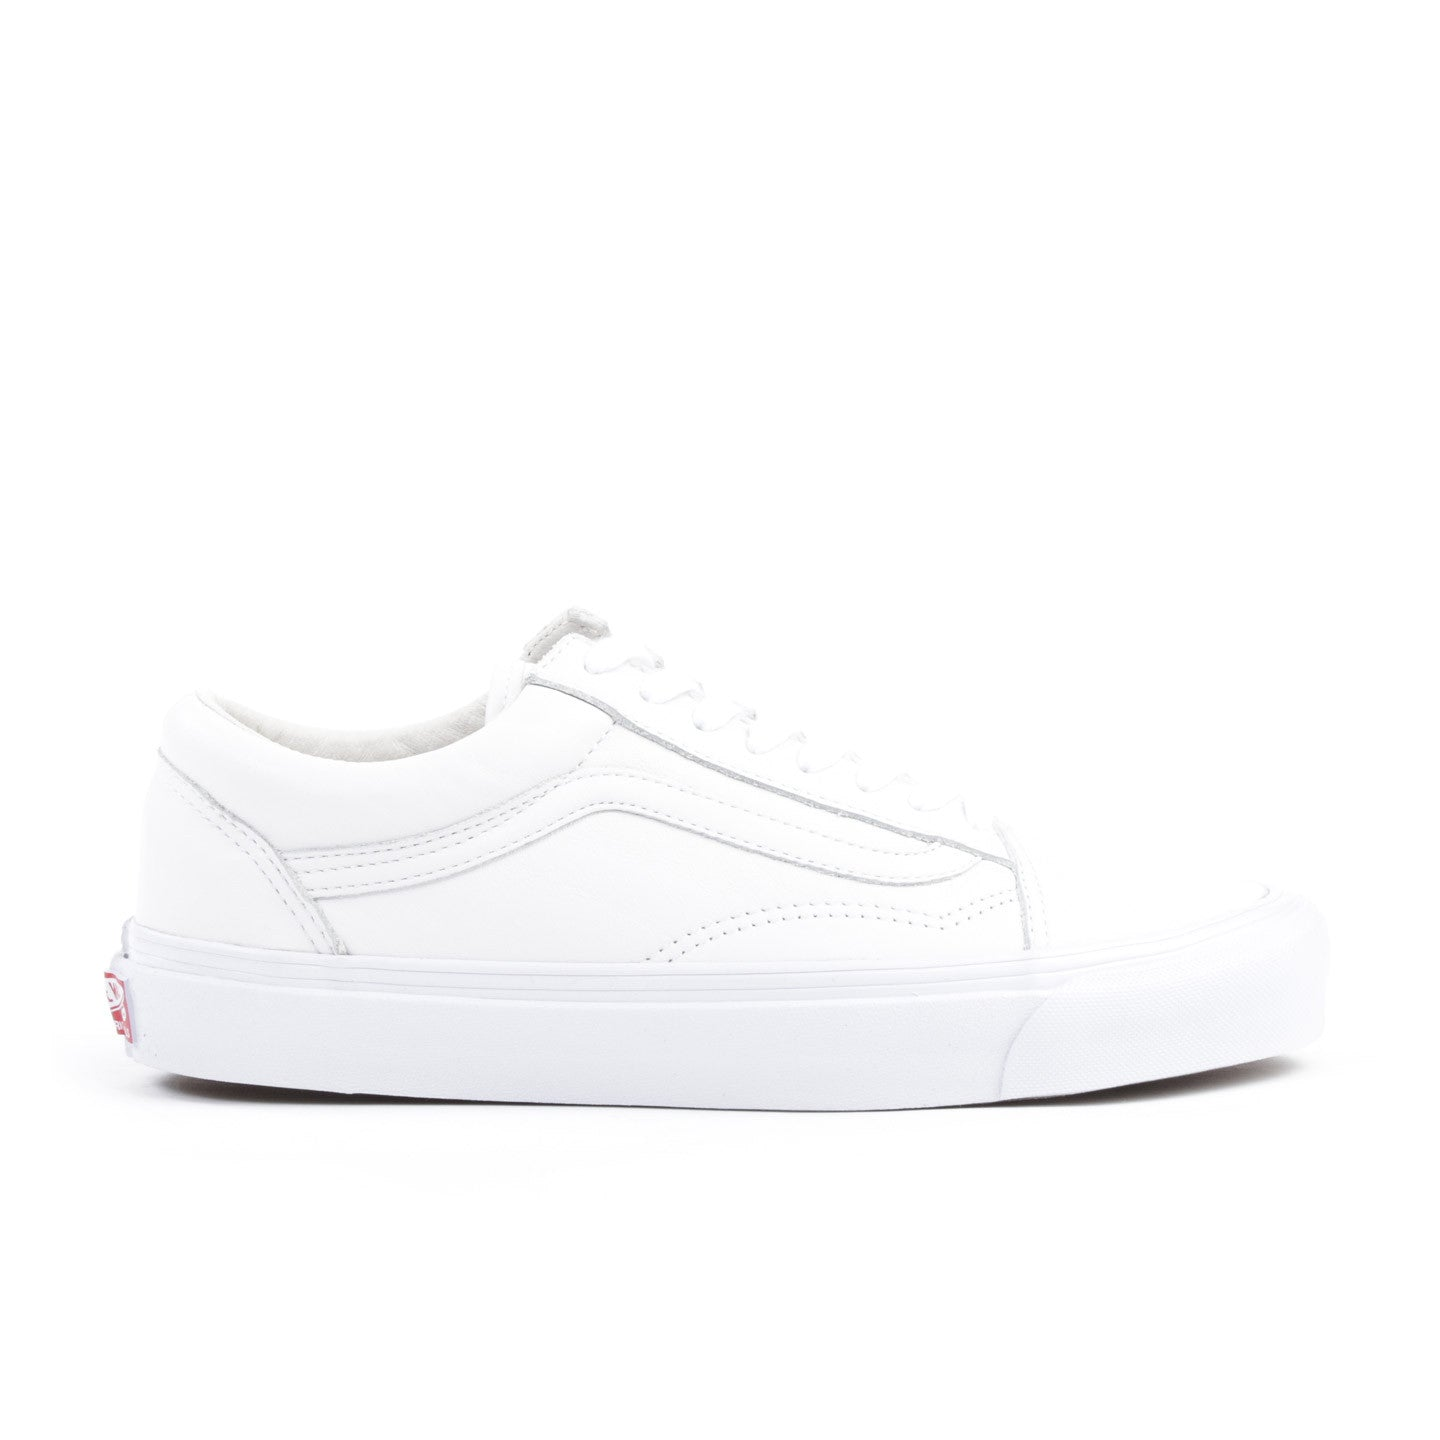 b21455396808 VAULT BY VANS OG OLD SKOOL LX WHITE LEATHER